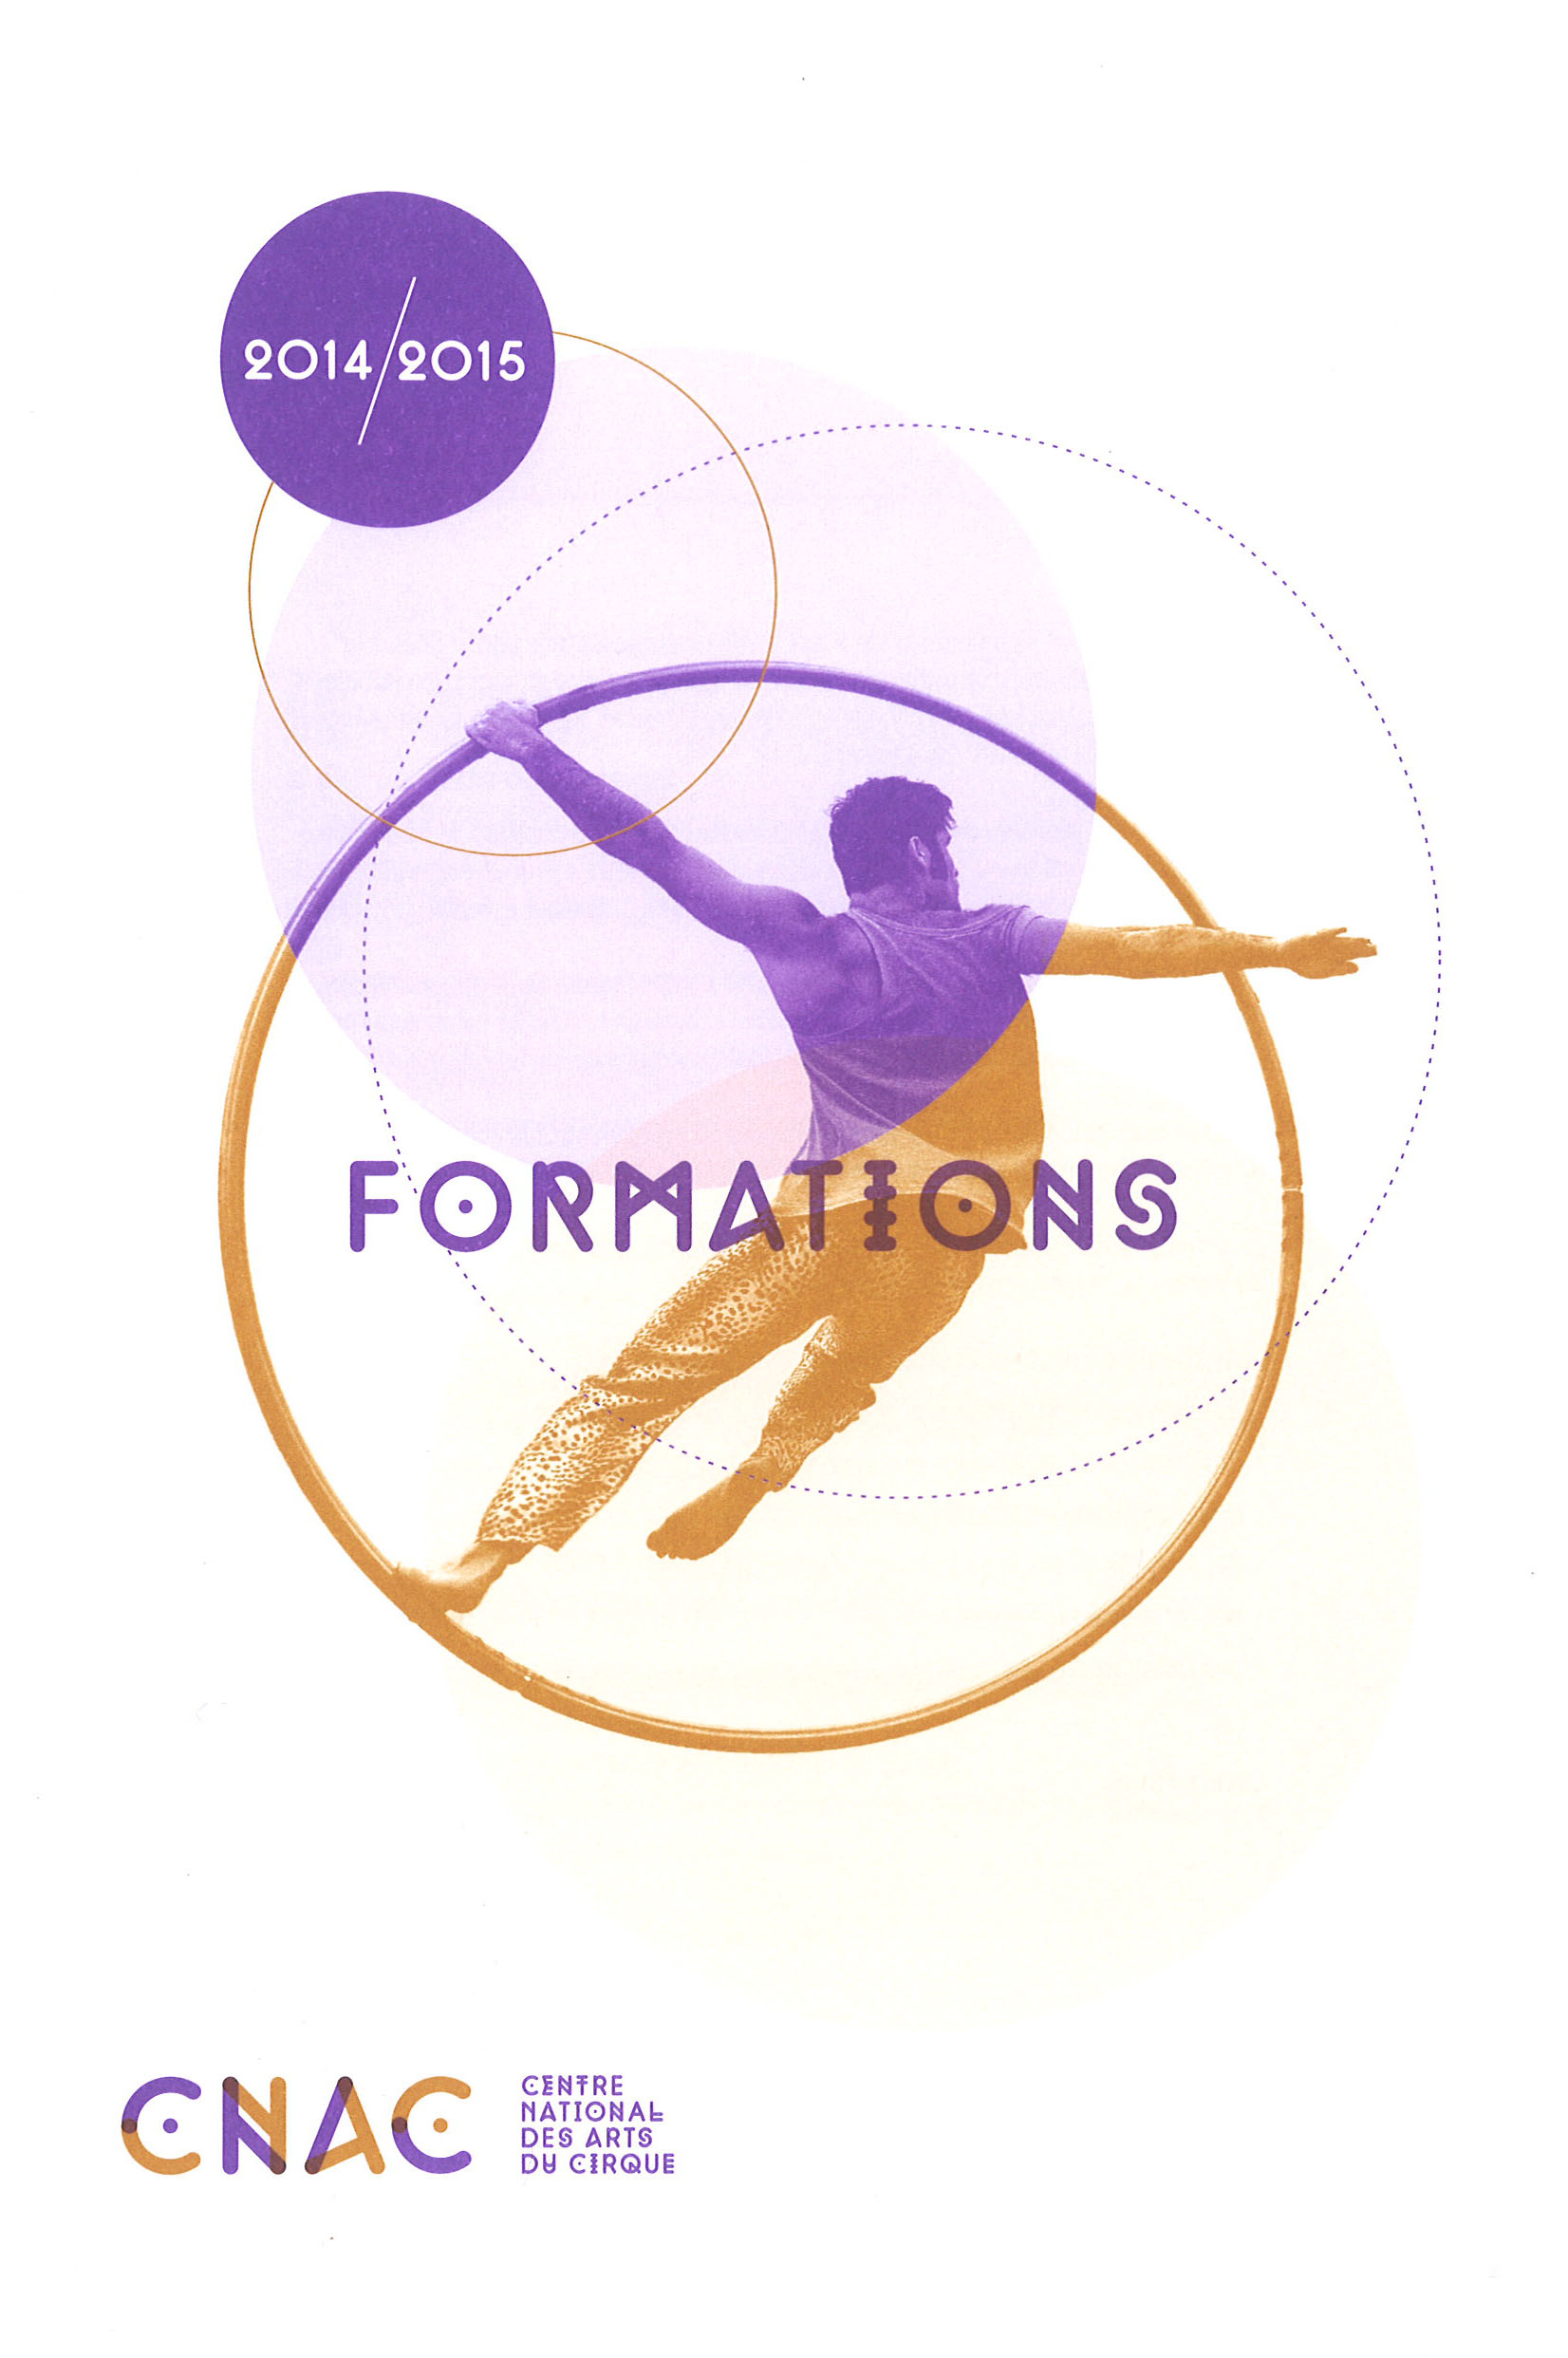 Programme 2014/2015 des stages de la formation permanente du Centre national des arts du cirque